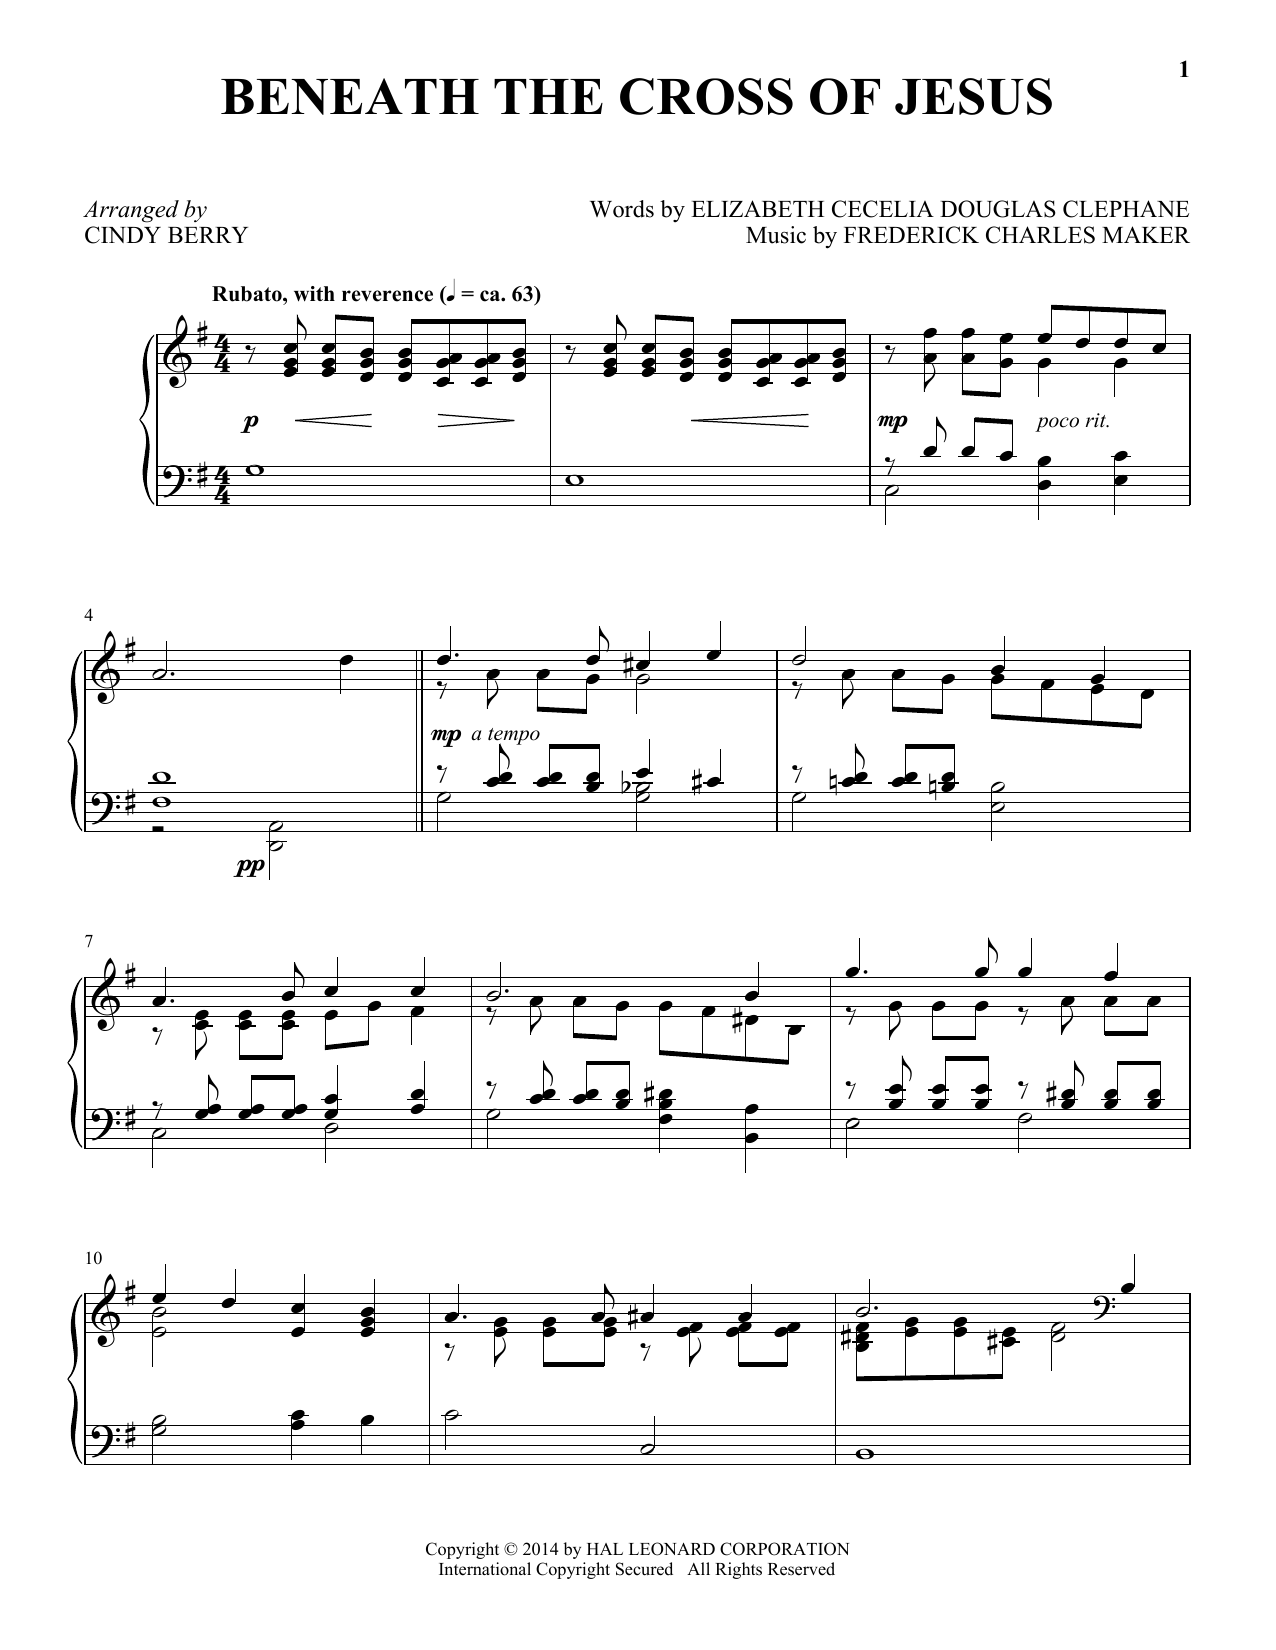 Download Frederick C. Maker 'Beneath The Cross Of Jesus' Digital Sheet Music Notes & Chords and start playing in minutes